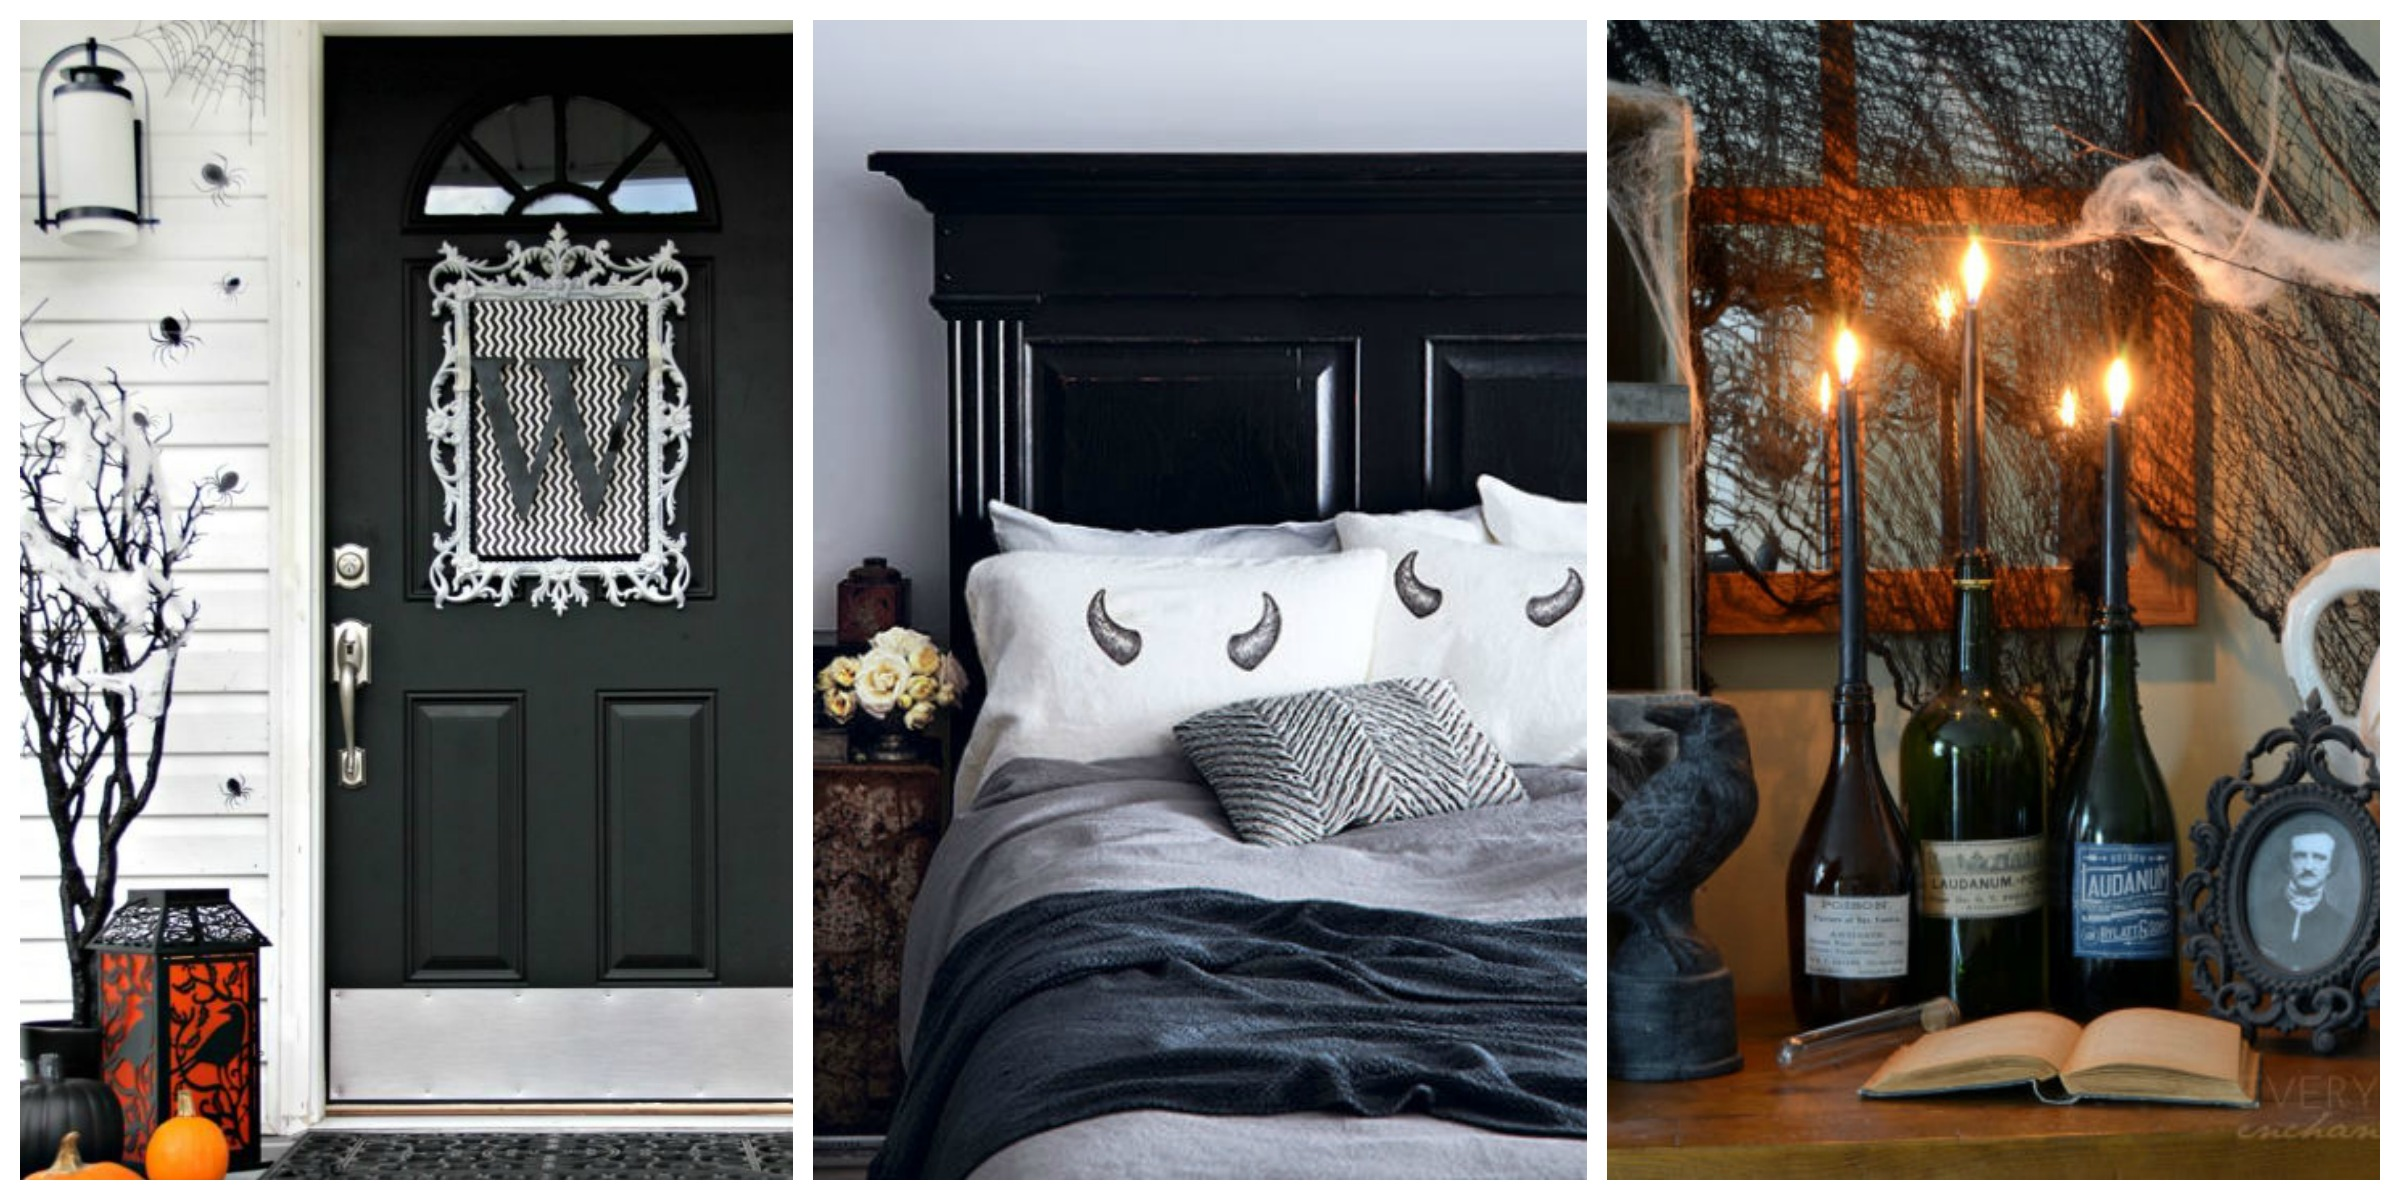 How to Decorate Every Room In Your House for Halloween